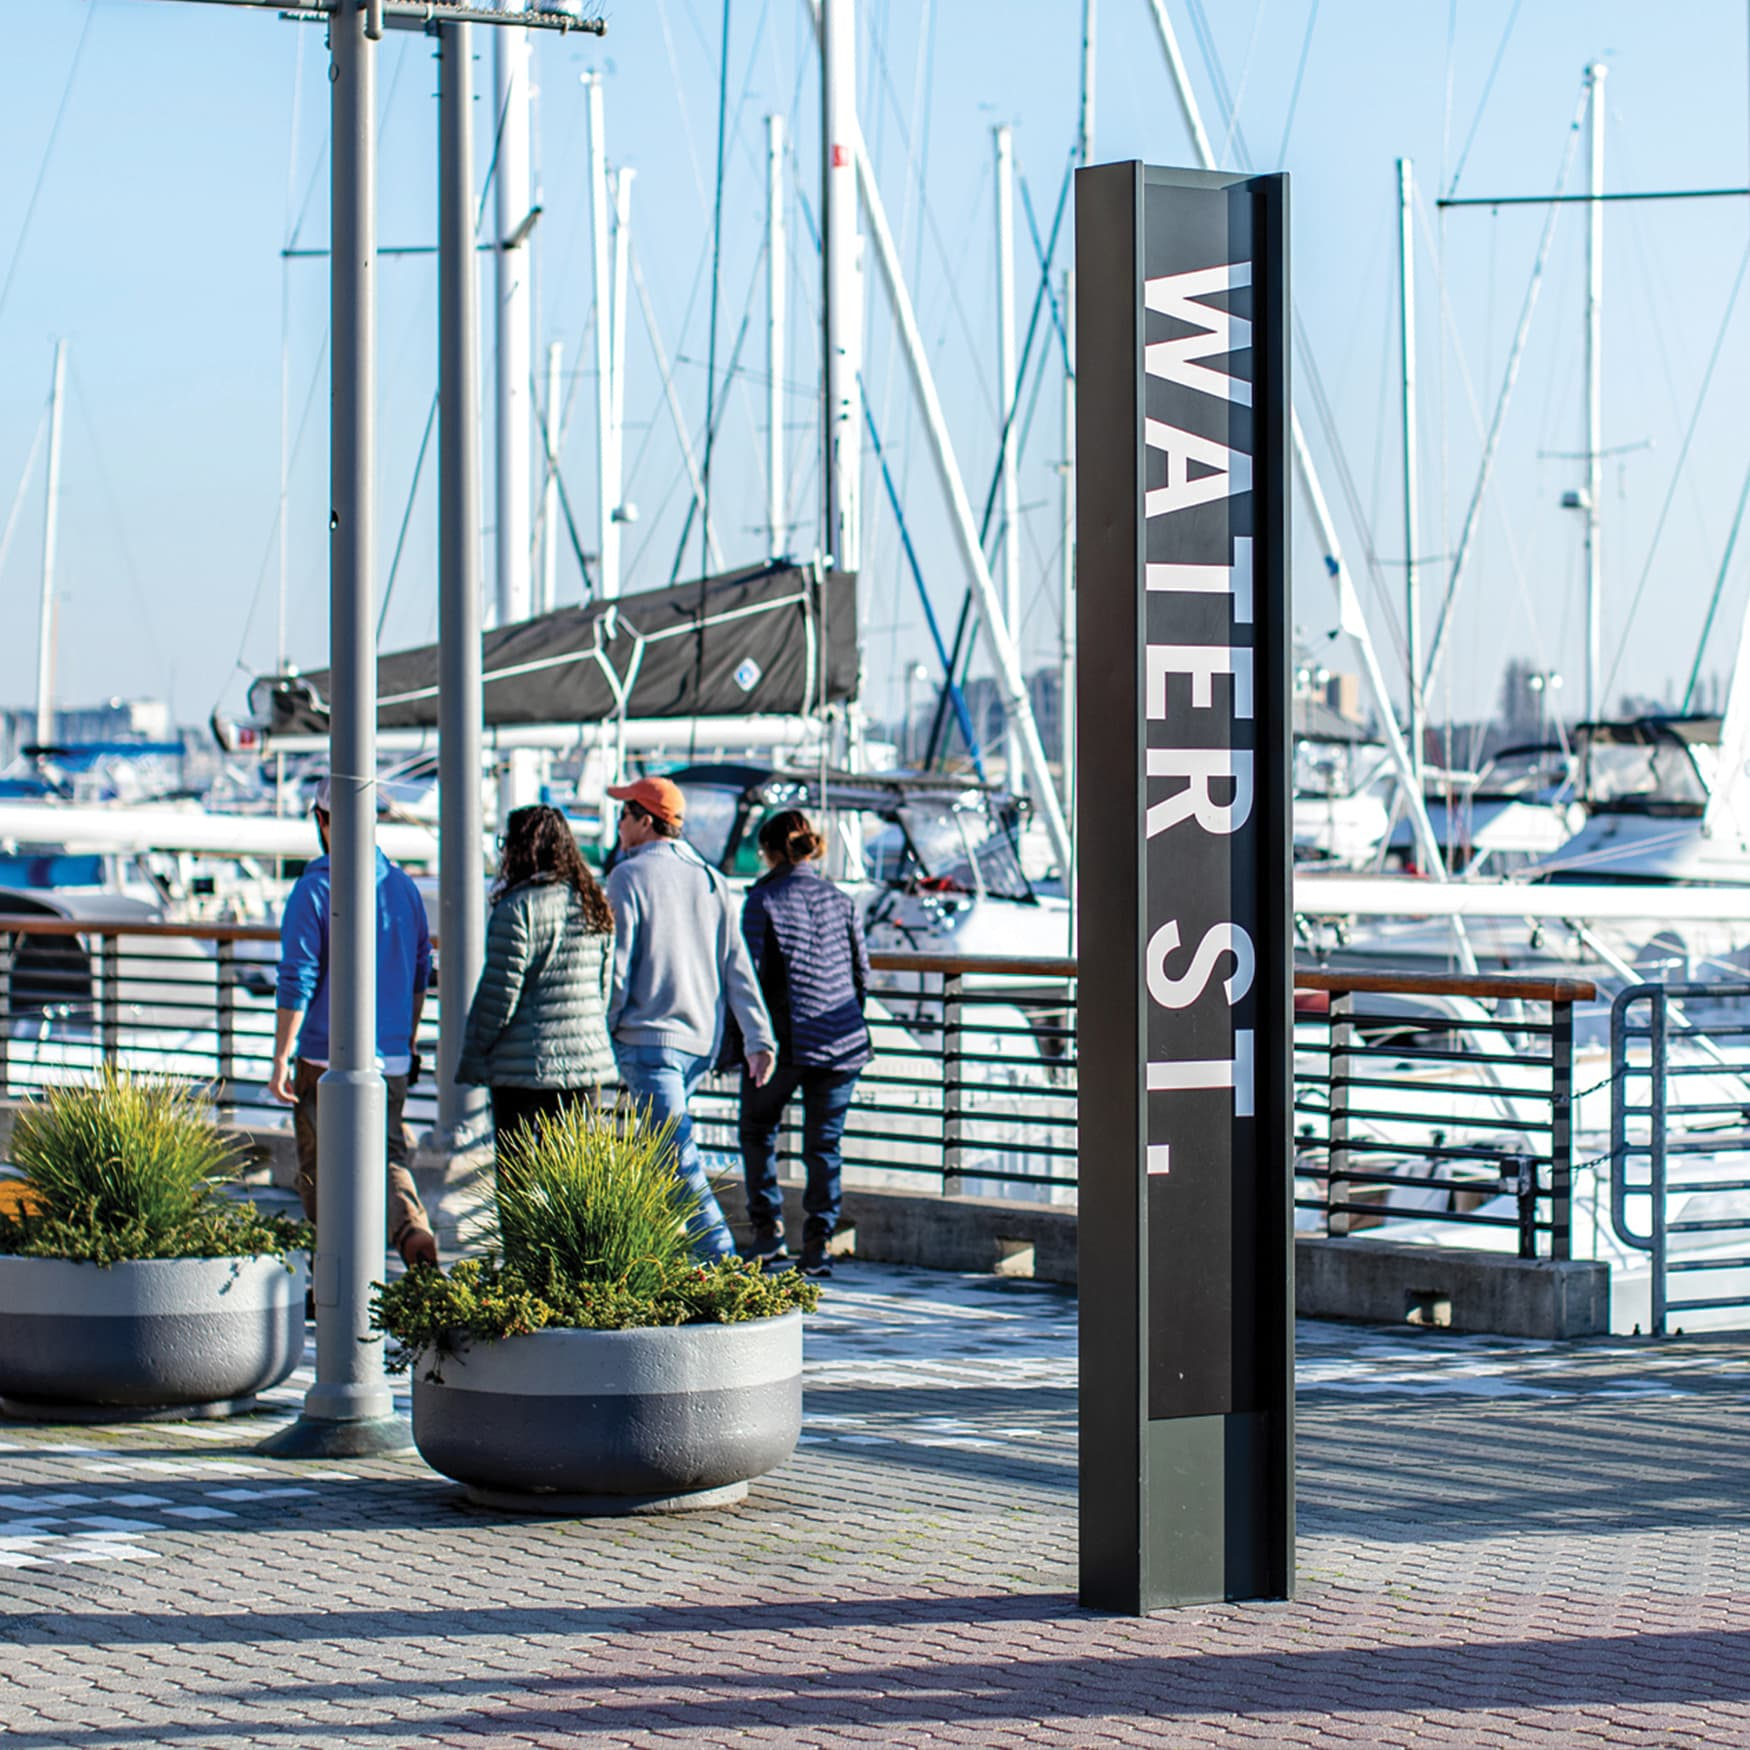 Waterfront wayfinding signage on the boardwalk with boats docked in the background